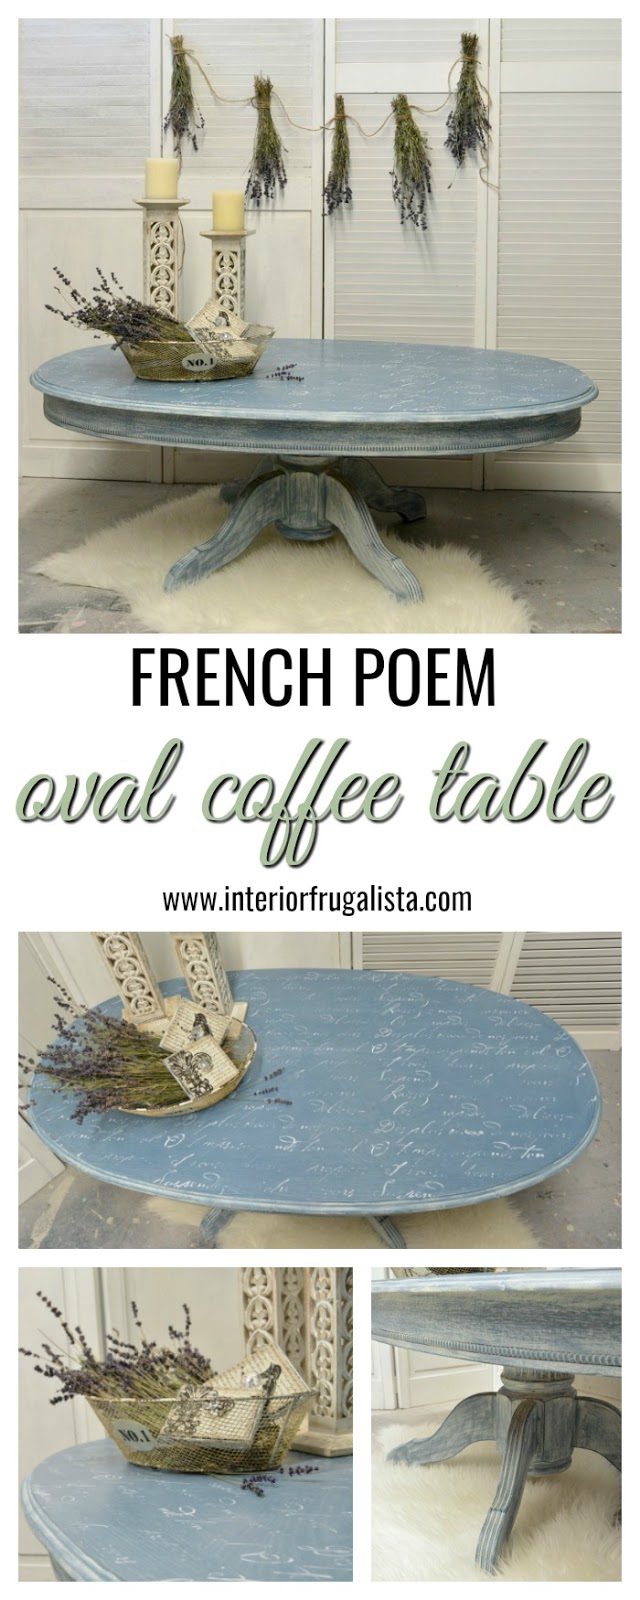 Oval Coffee Table Distressed With French Poem